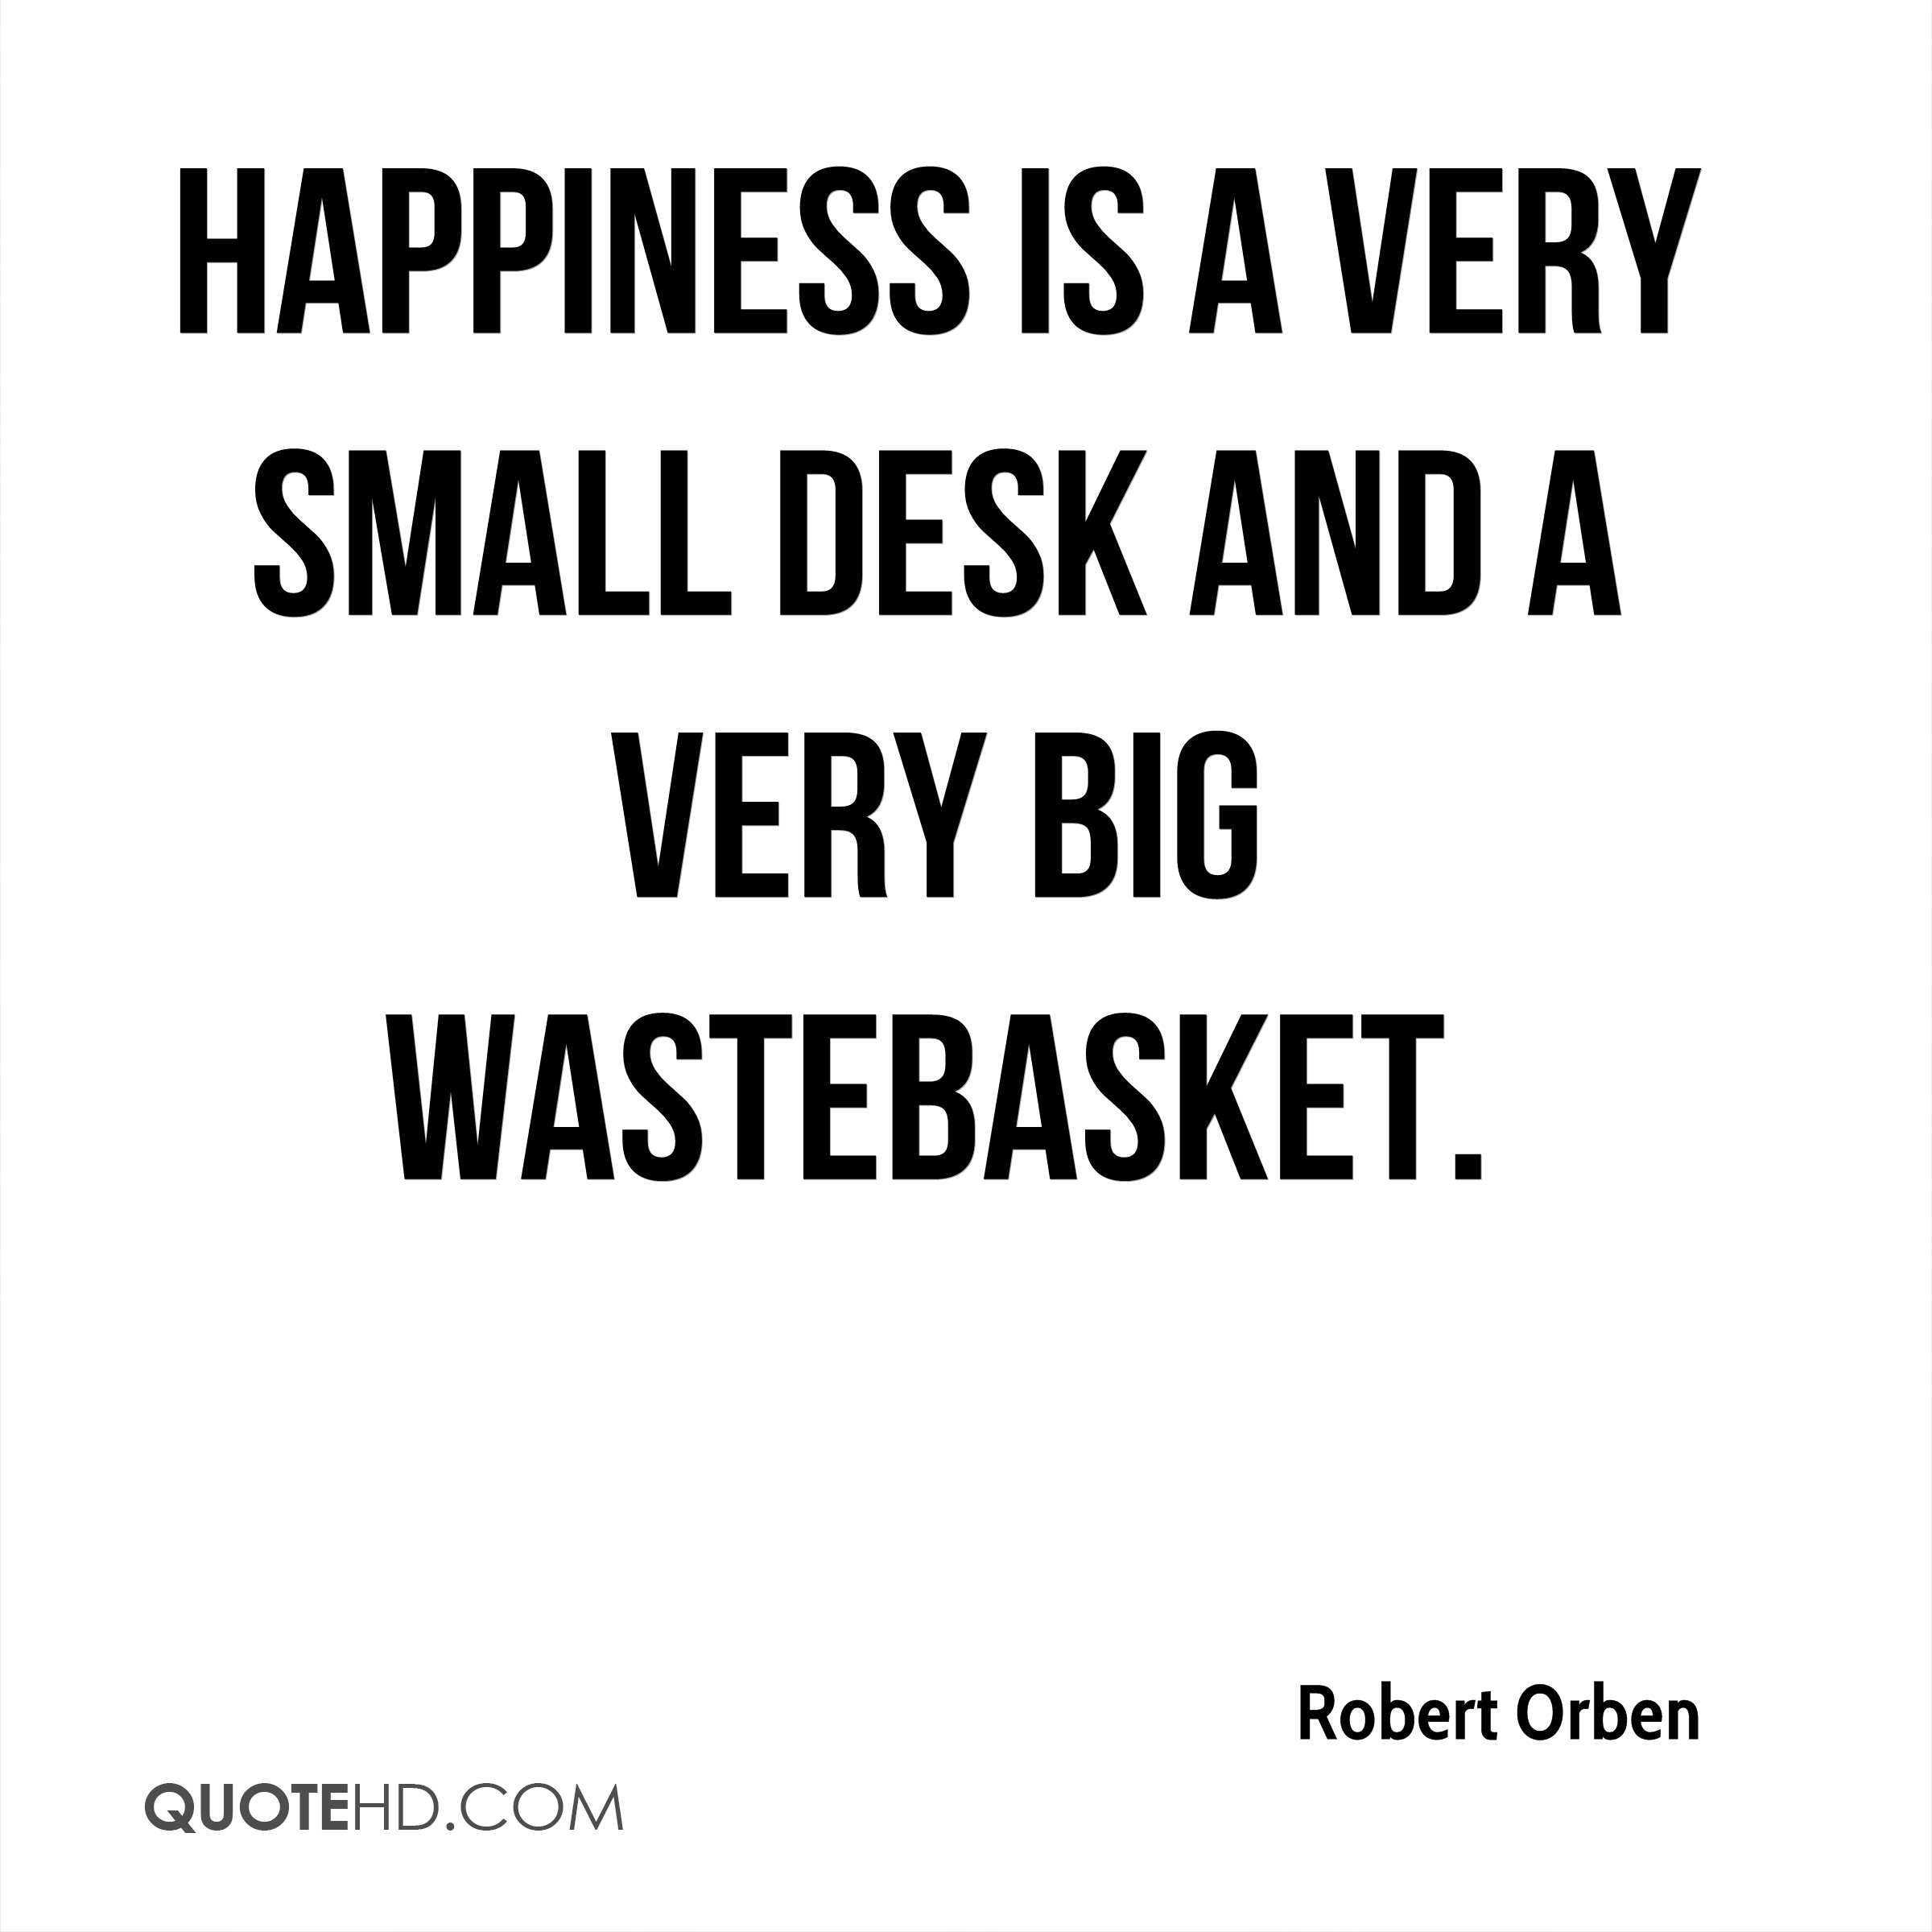 Happiness is a very small desk and a very big wastebasket.